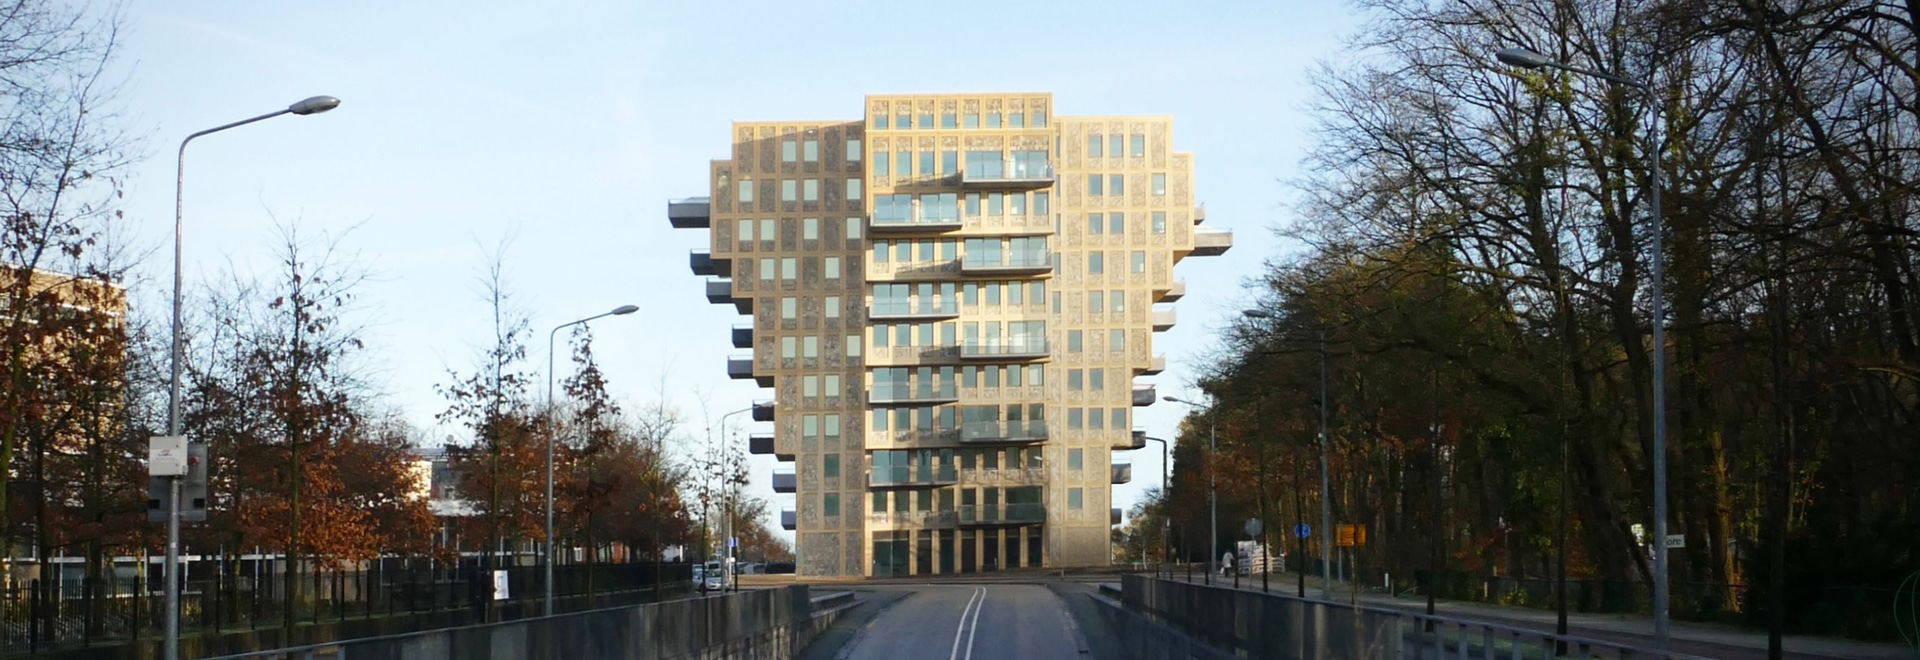 Belvedere Tower is a top-heavy cross-shaped Dutch apartment block